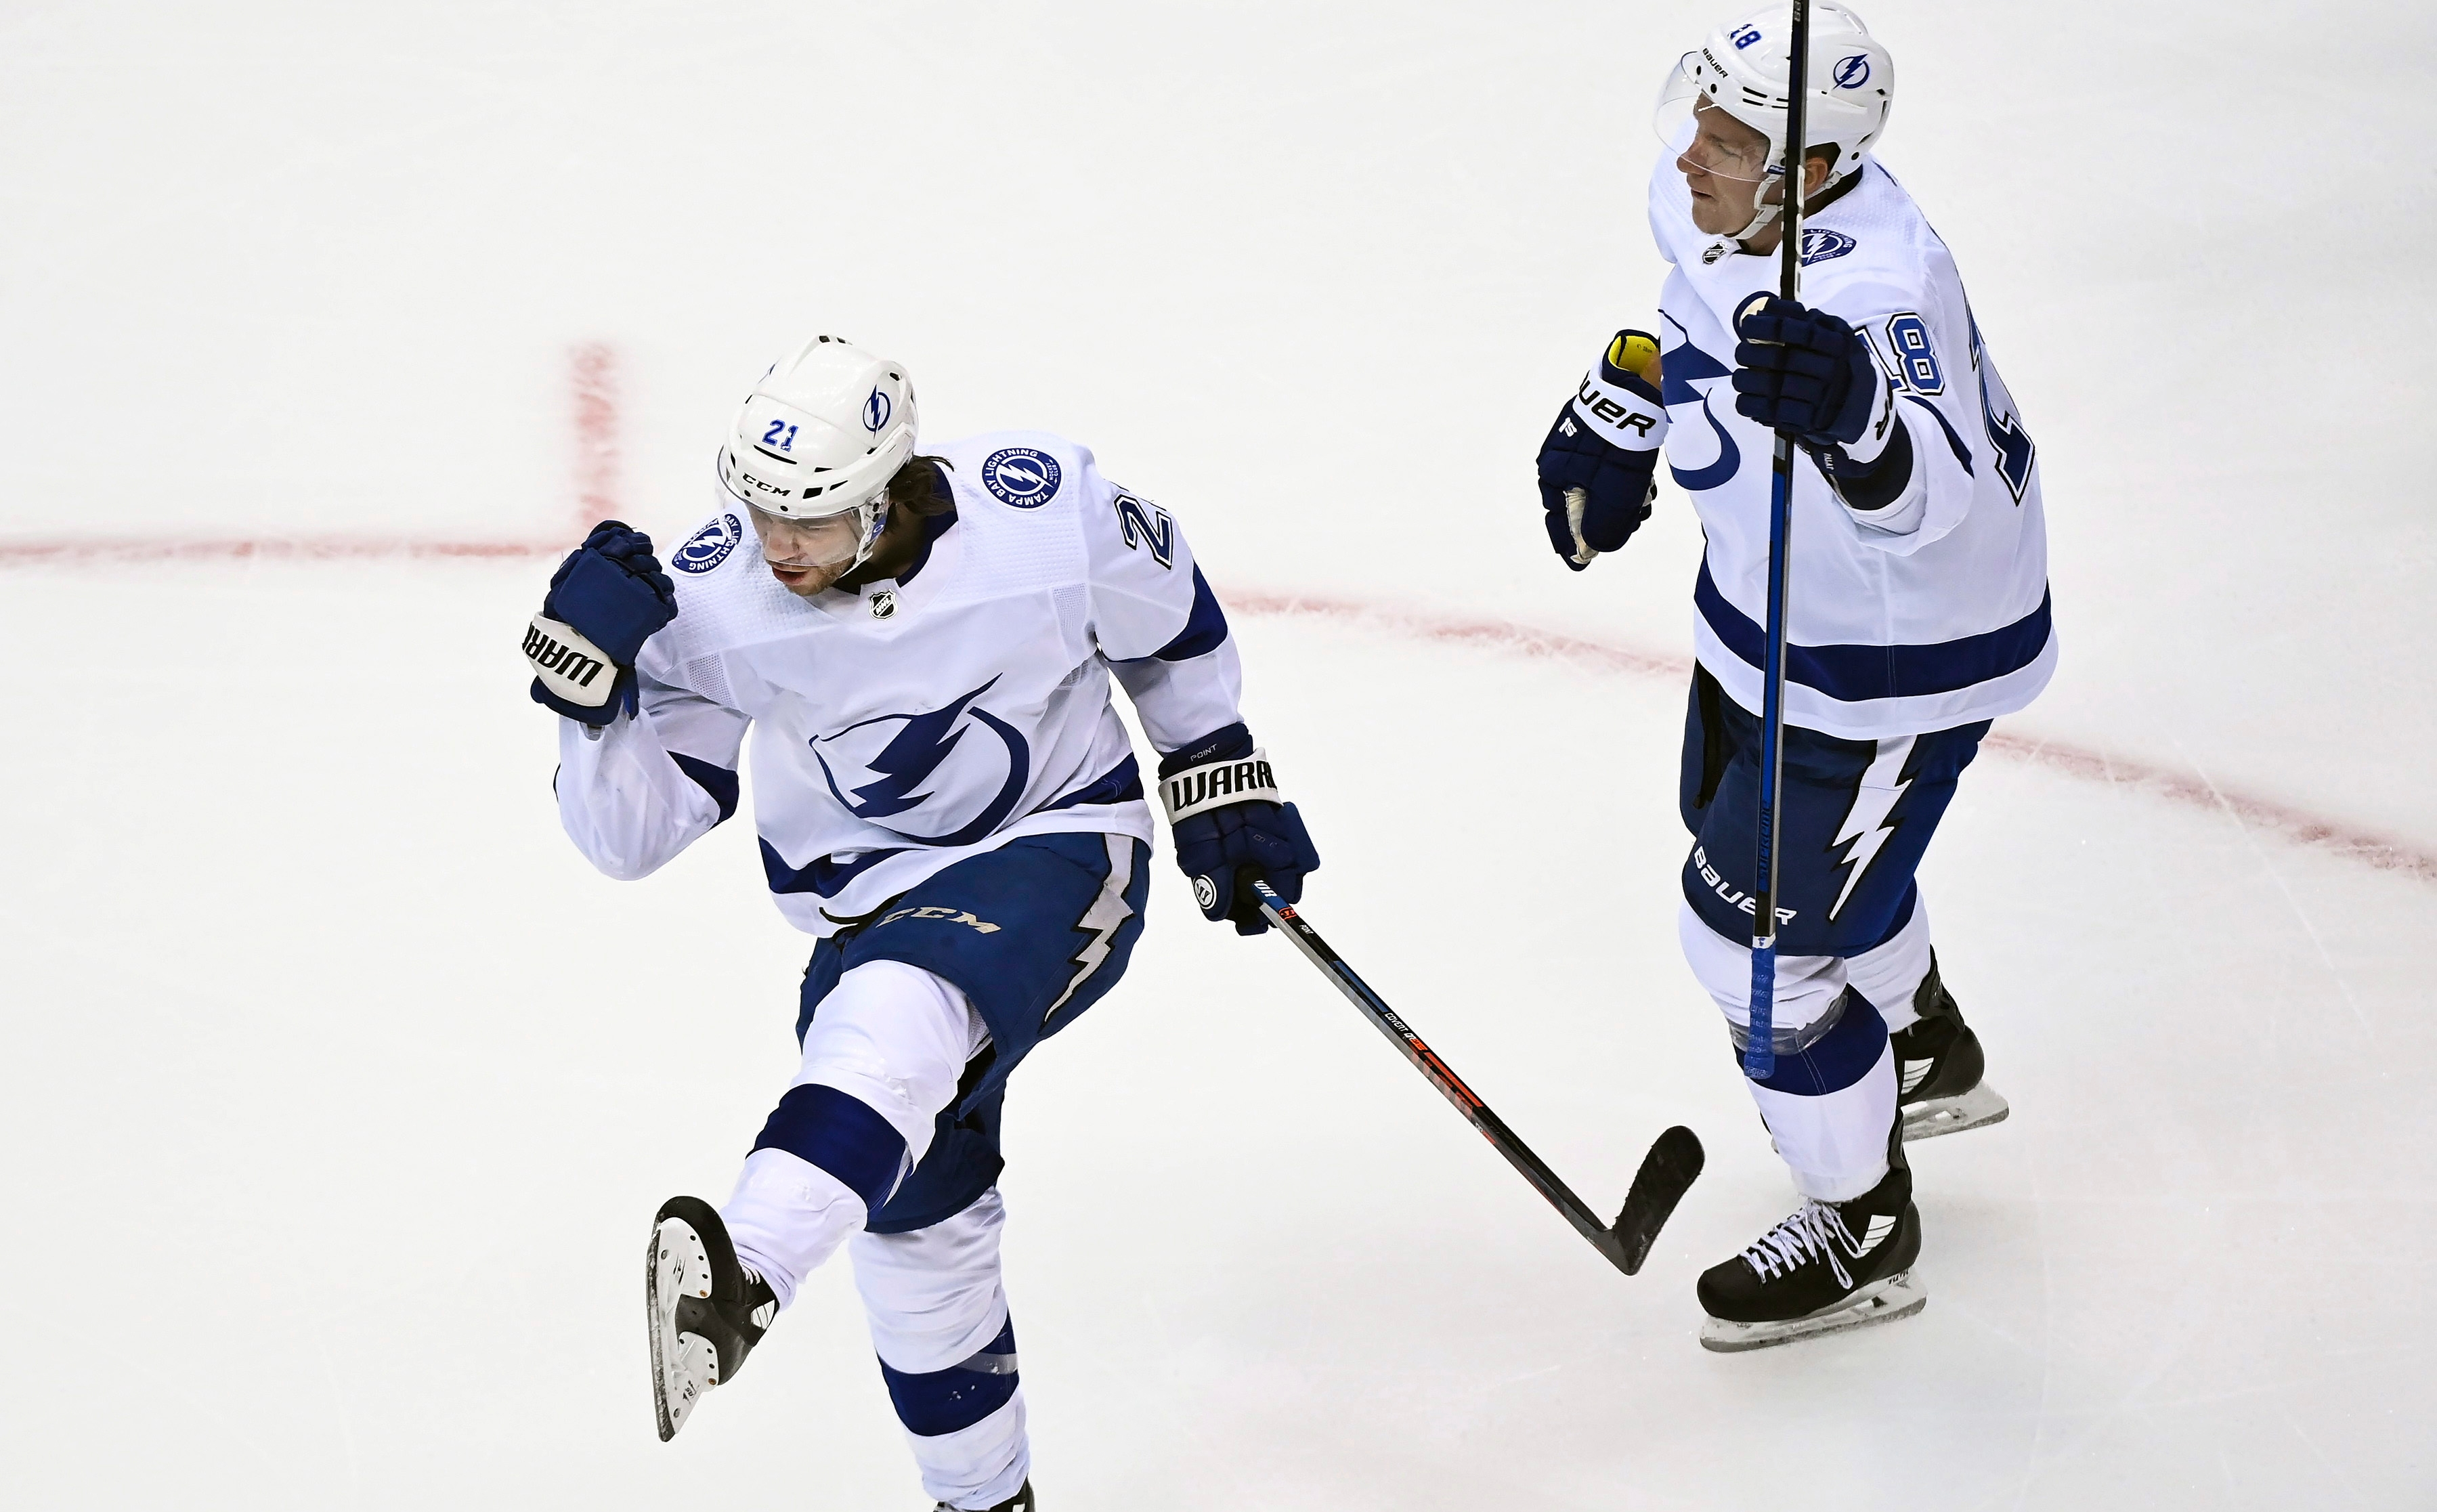 Columbus Blue Jackets Vs Tampa Bay Lightning Free Live Stream 8 11 20 How To Watch Nhl Eastern Conference 1st Round Time Channel Pennlive Com